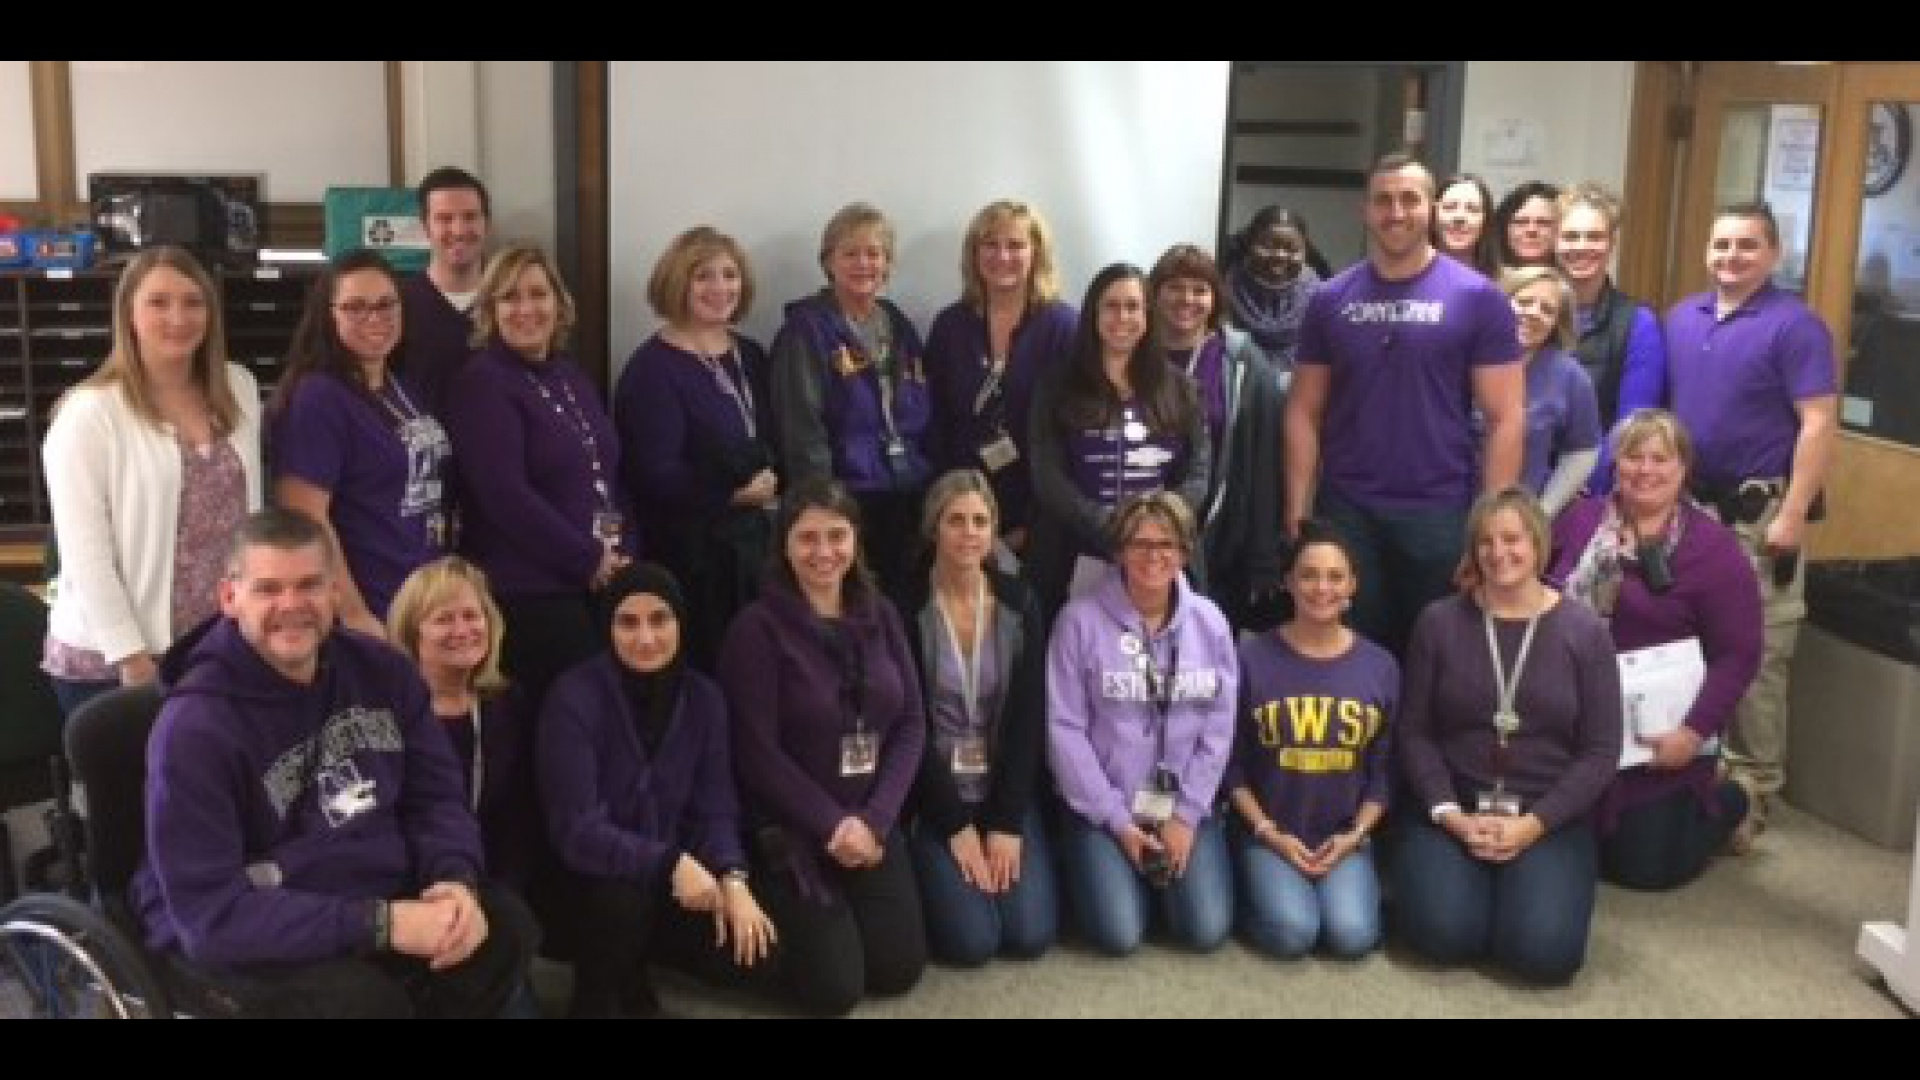 slidshow image - Pancreatic Cancer Awareness Day - Purple Pride